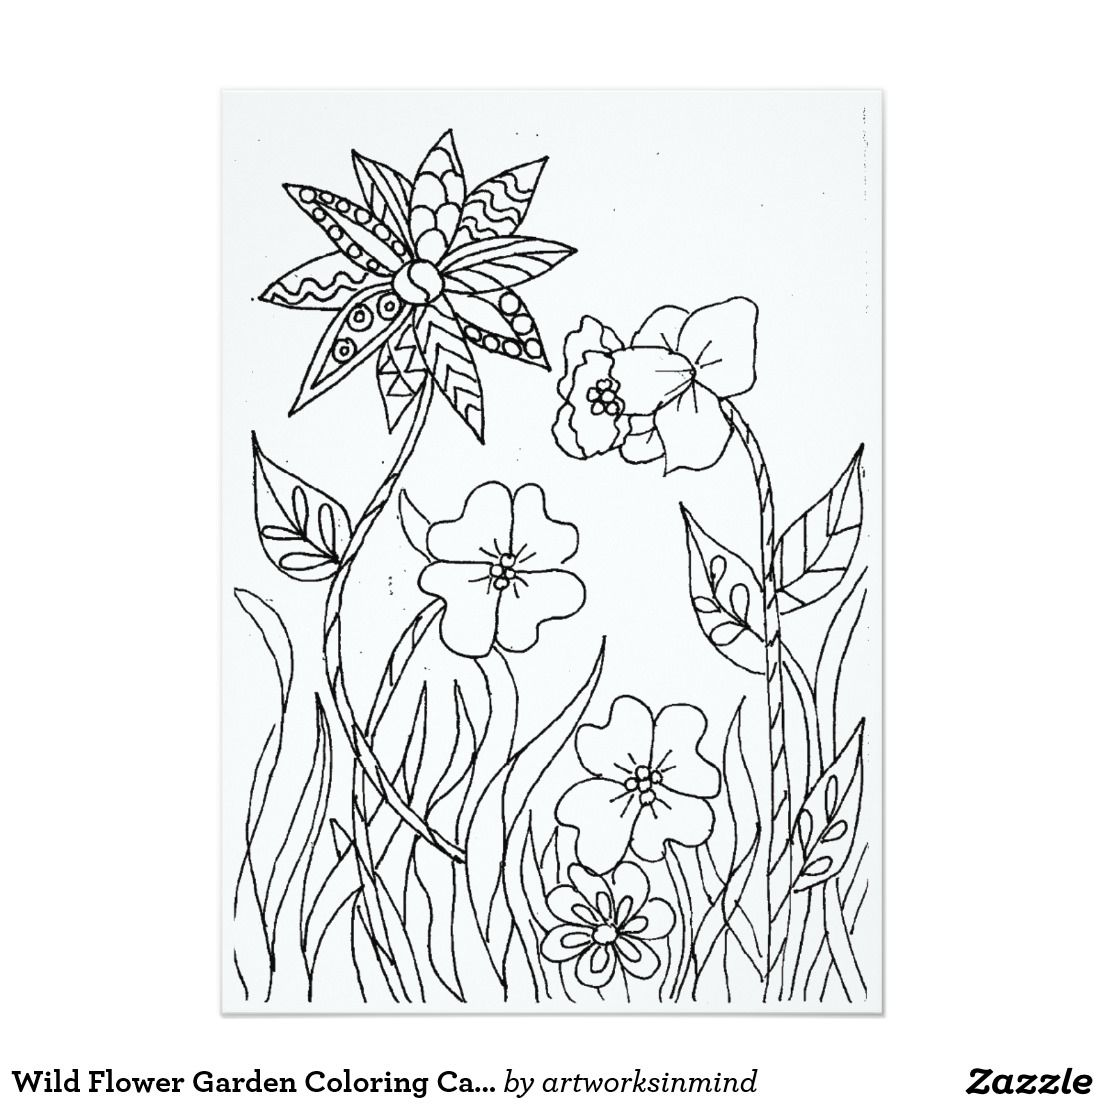 Wild Flower Garden Coloring Card #card #coloring #arttherapy #zazzle